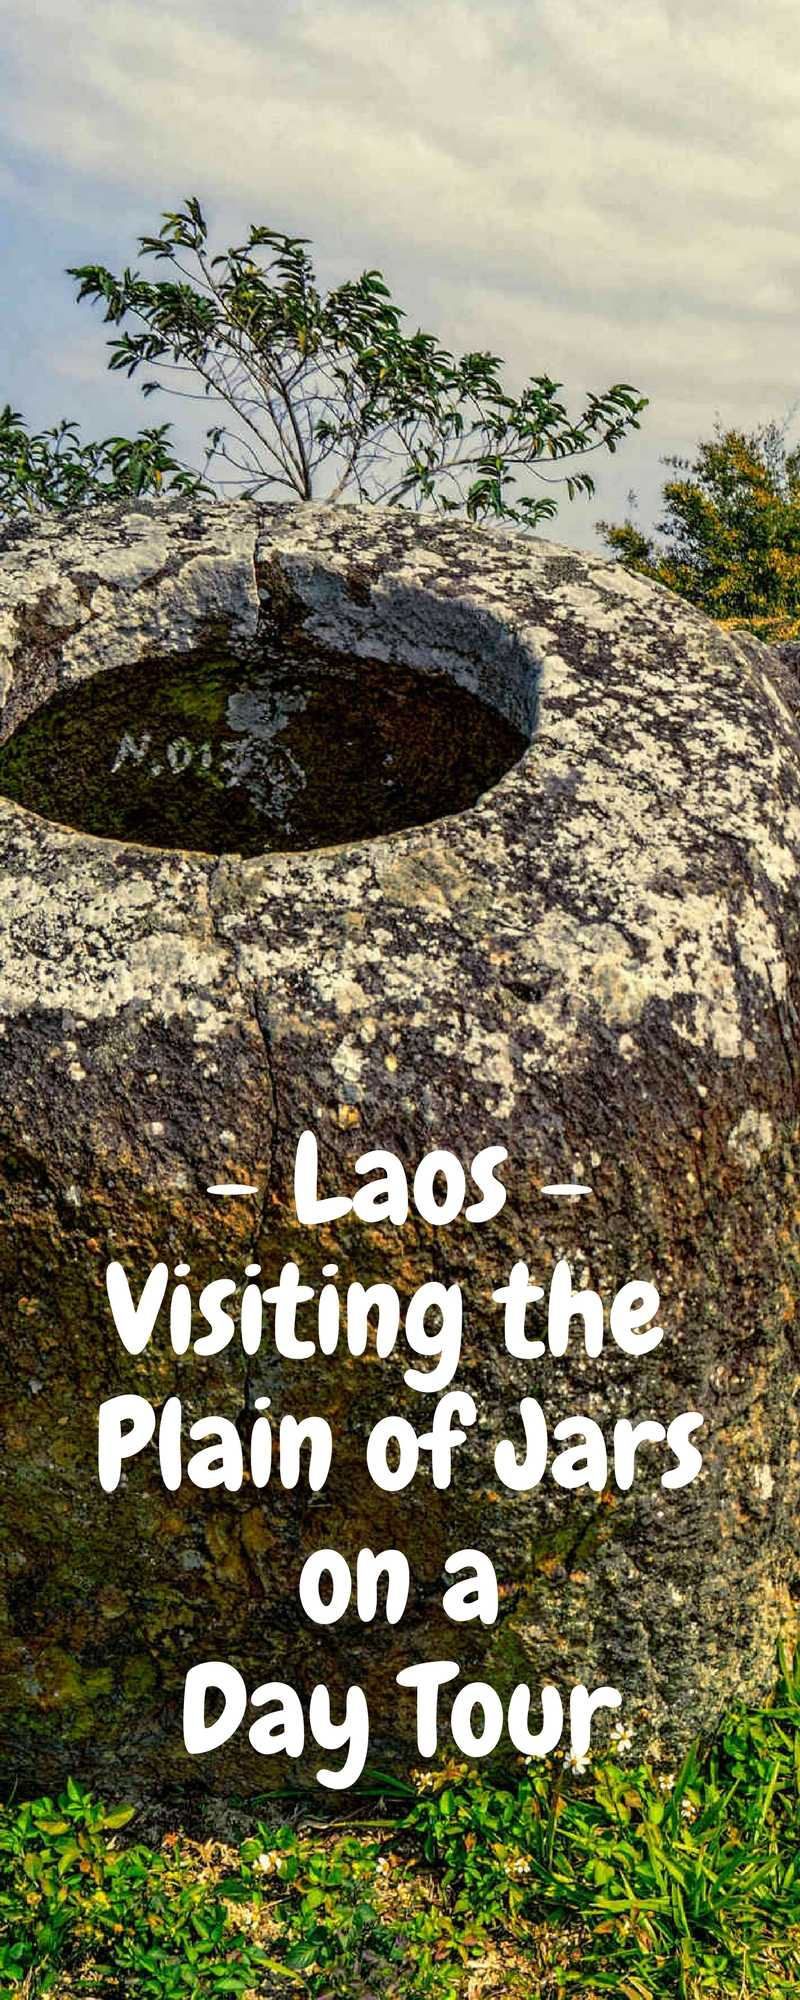 Visiting the Plain of Jars on a Day Tour | Laos | Phonsavon | Plain of Jars Day Tour | SE Asia | SE Asia Packing List | SE Asia Itinerary | SE Asia Packing List | SE Asia Travel | SE Asia Outfits | Travel | ARoadtoTravel.com